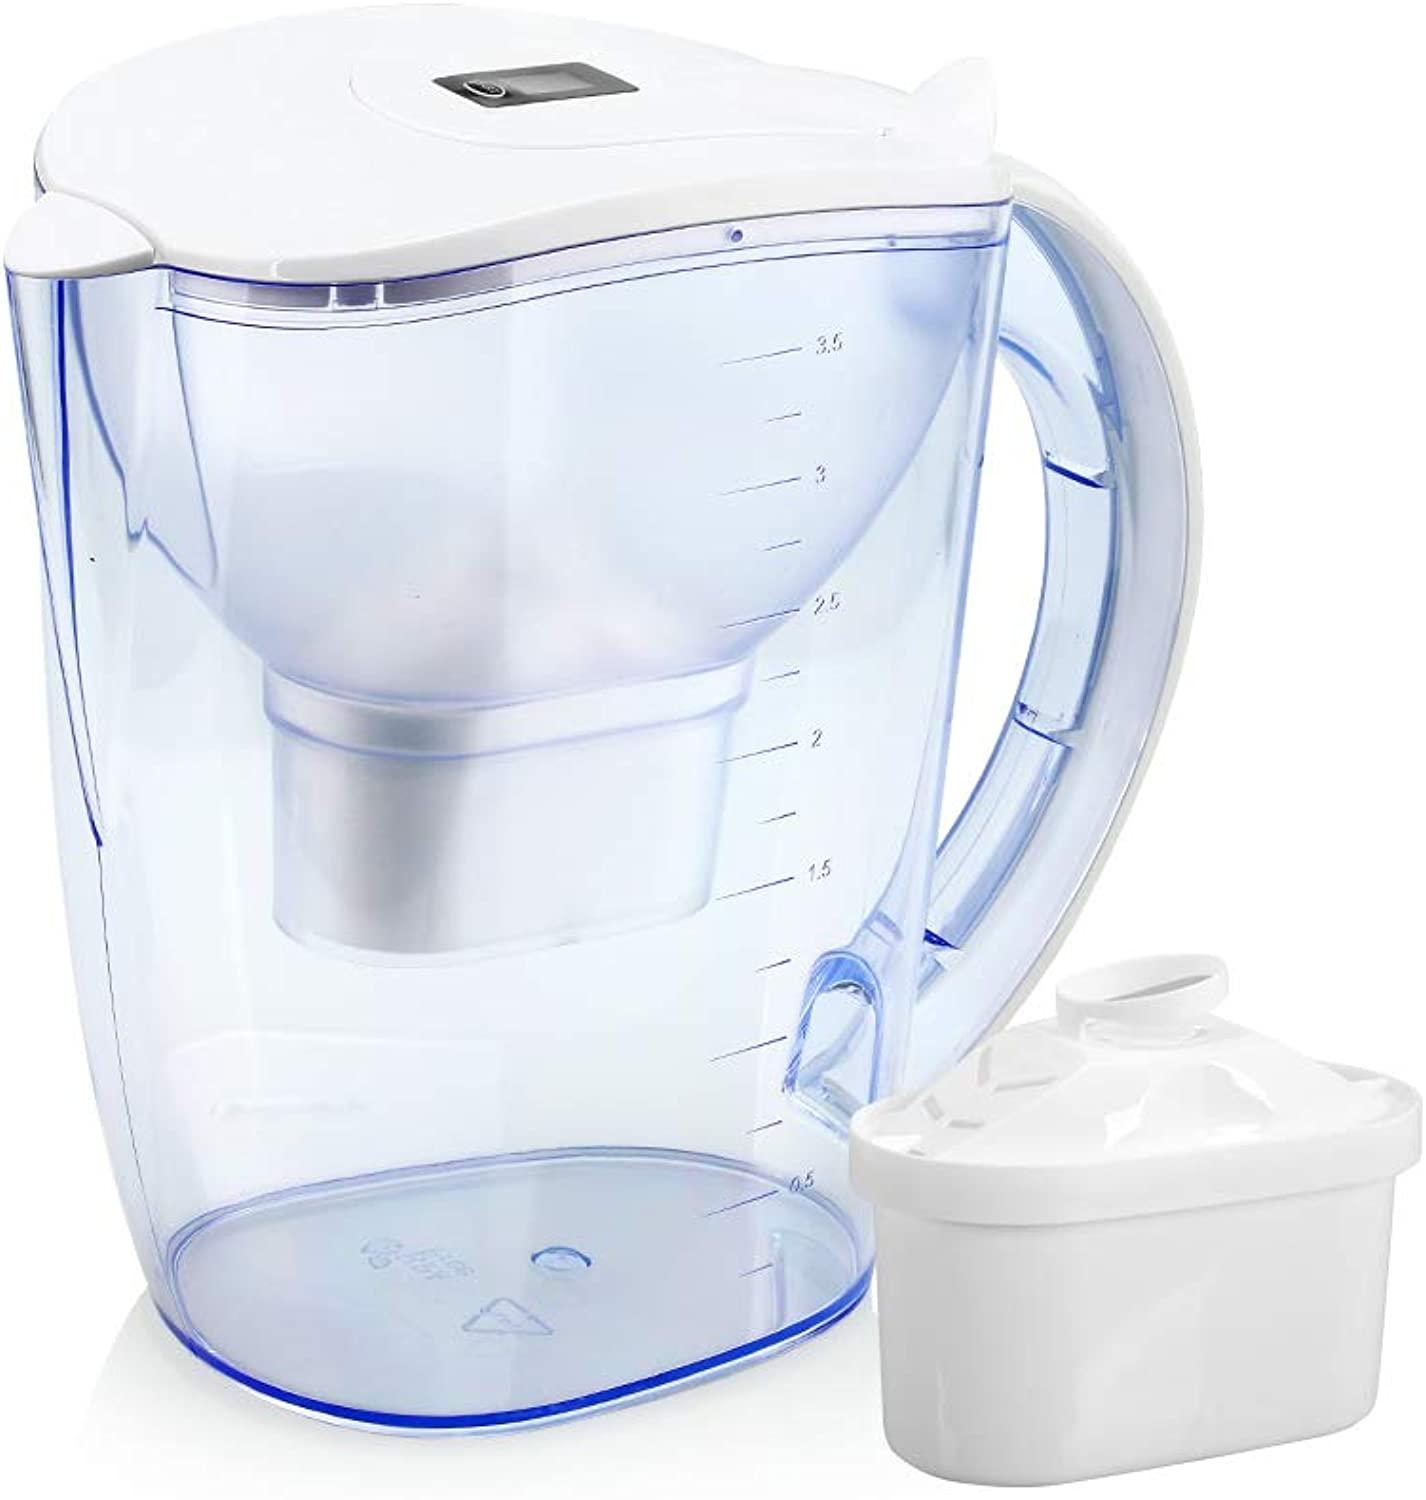 Wellbluee Alkaline Water Filter Pitcher with LED Indicator Plus 2xPremium 6 Stages Filter -3.5L Capacity - Removes Chlorine and Contaminants-Increase pH 9.5+, Make Fresh and Heathy Water Anytime